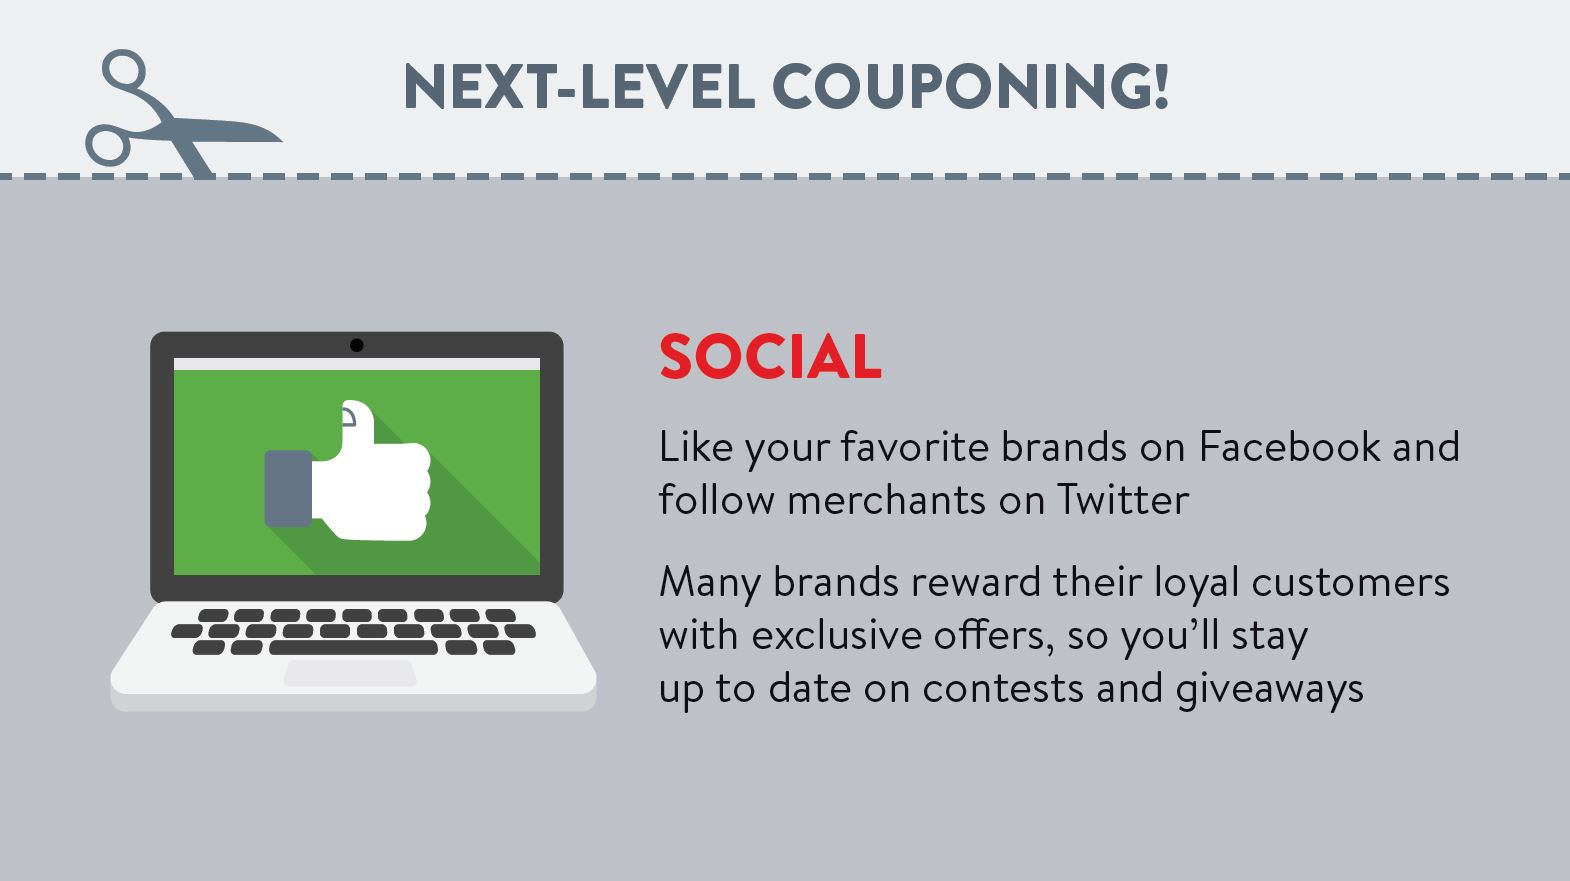 Like your favorite brands on Facebook and follow merchants on Twitter. Many brands reward their loyal customers with exclusive offers, so you'll stay up to date on contests and giveaways.